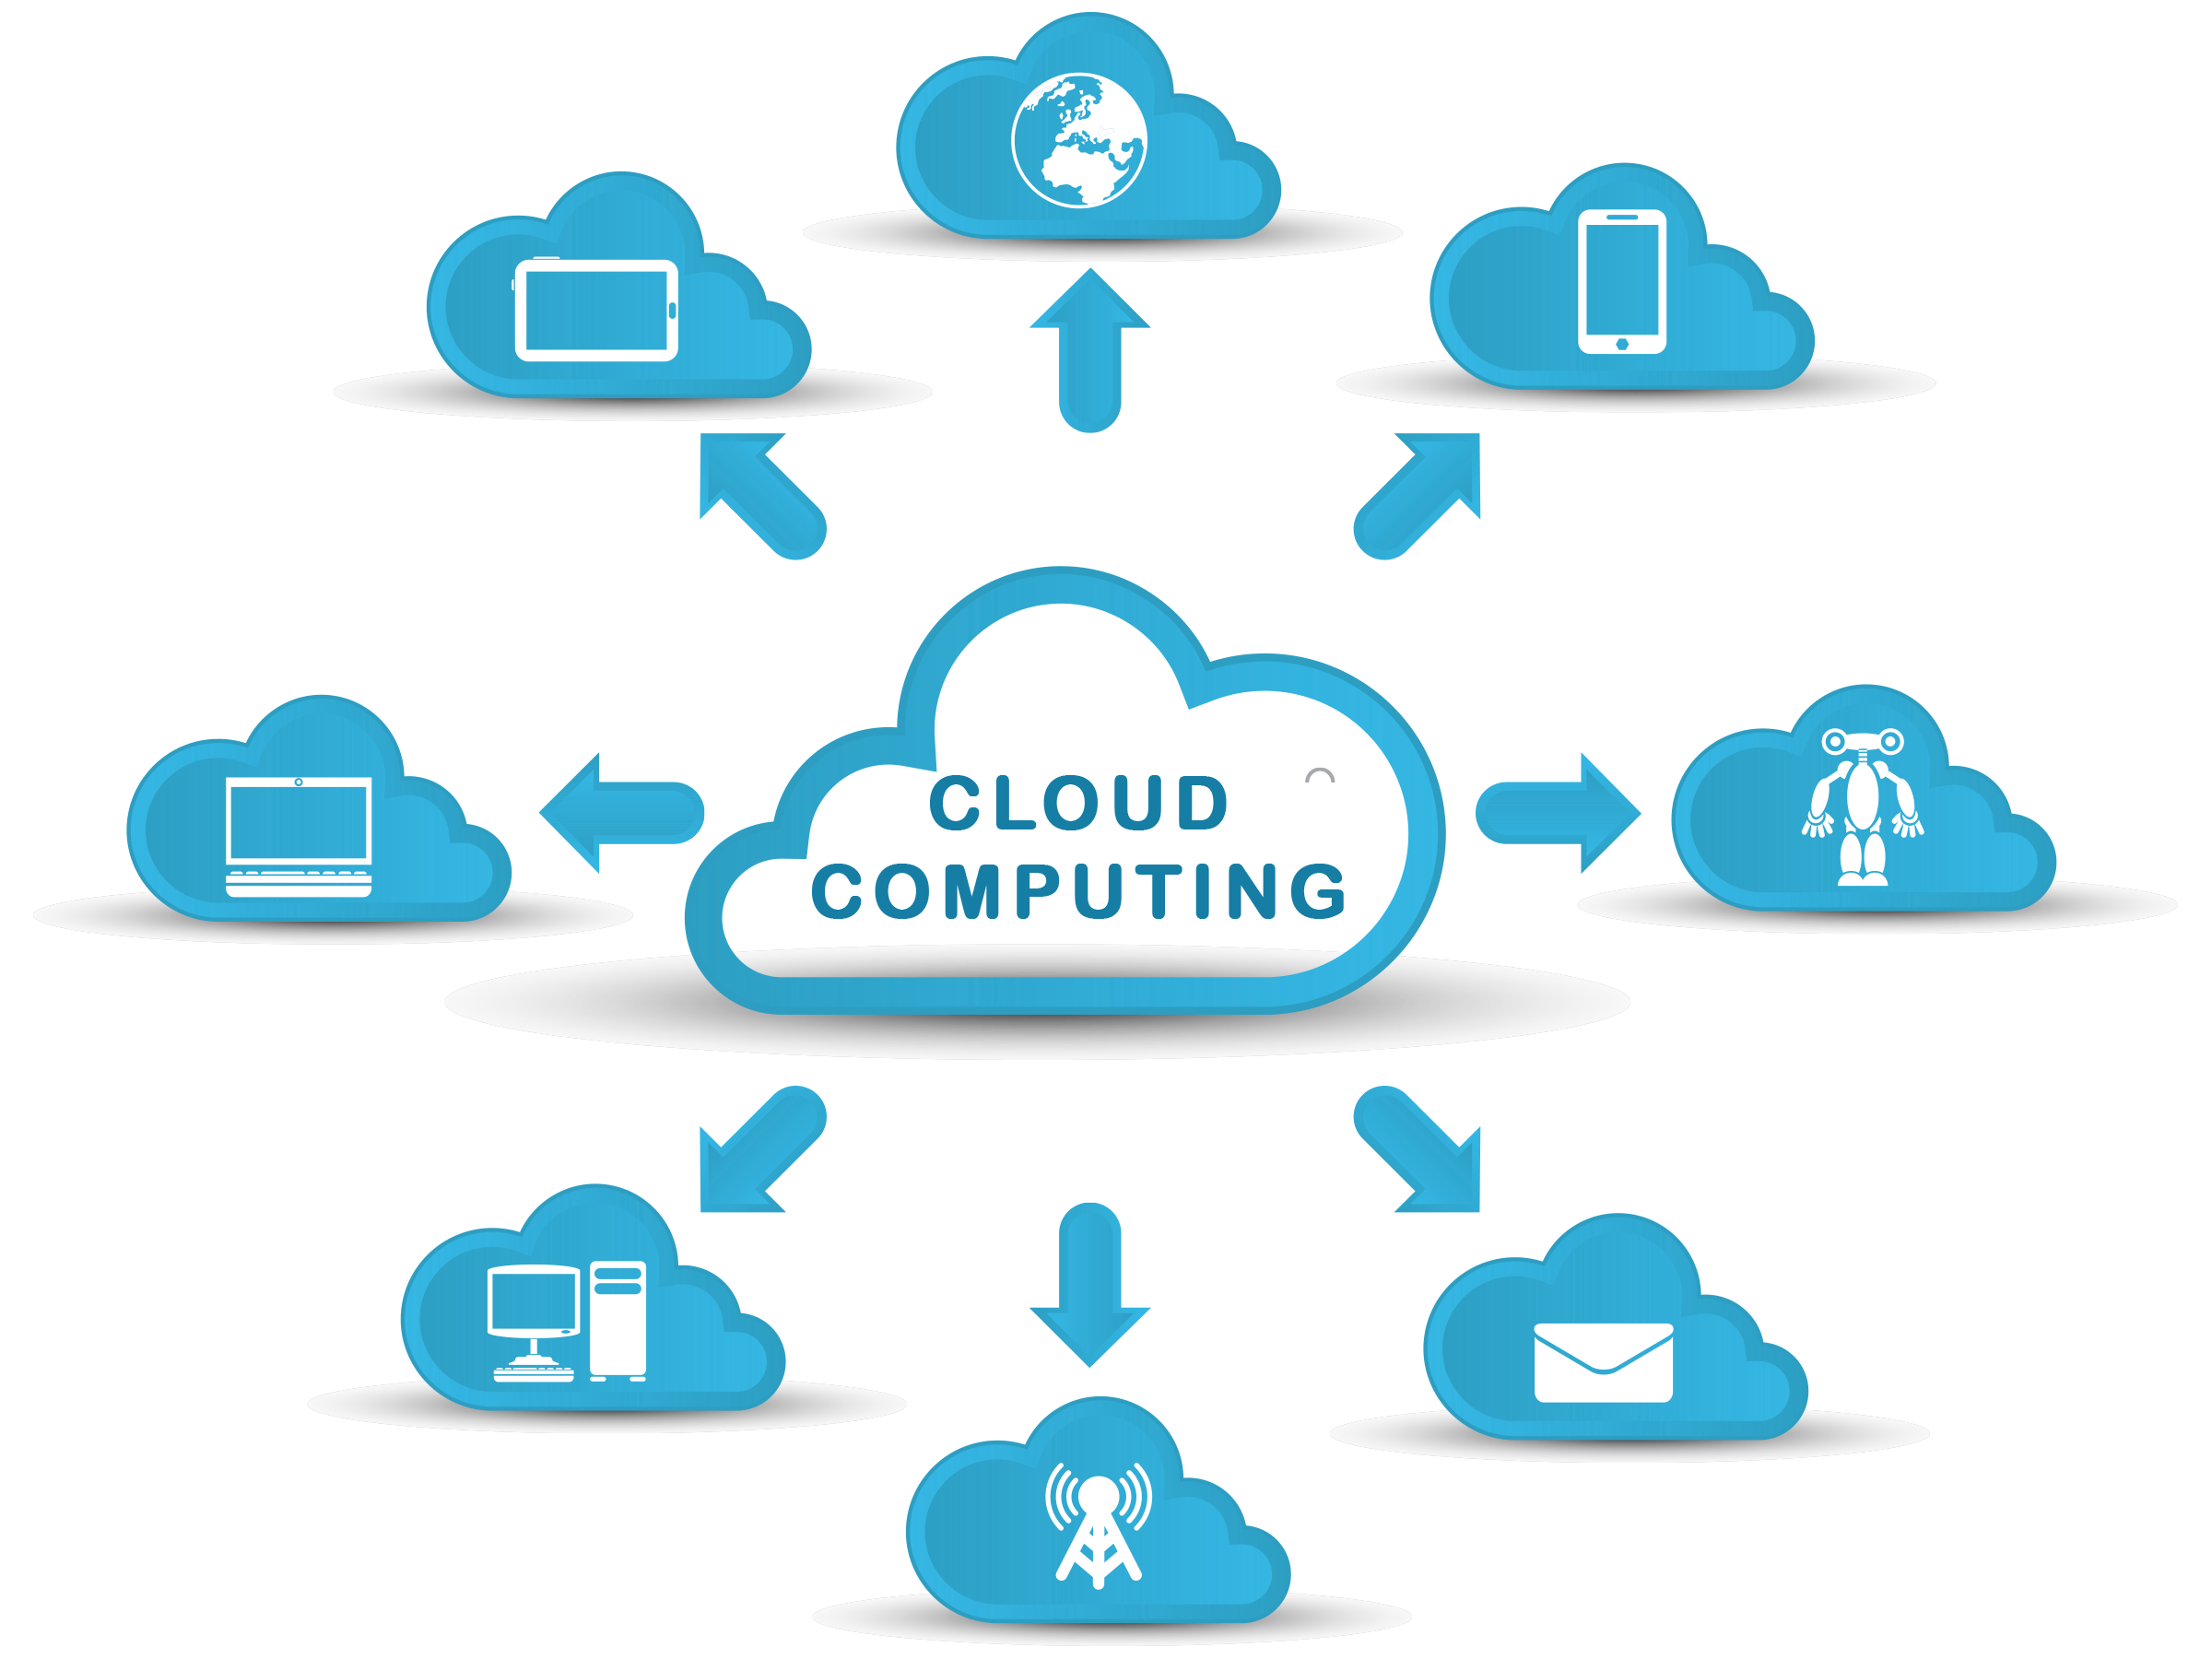 Cloud-computing-info-nuage